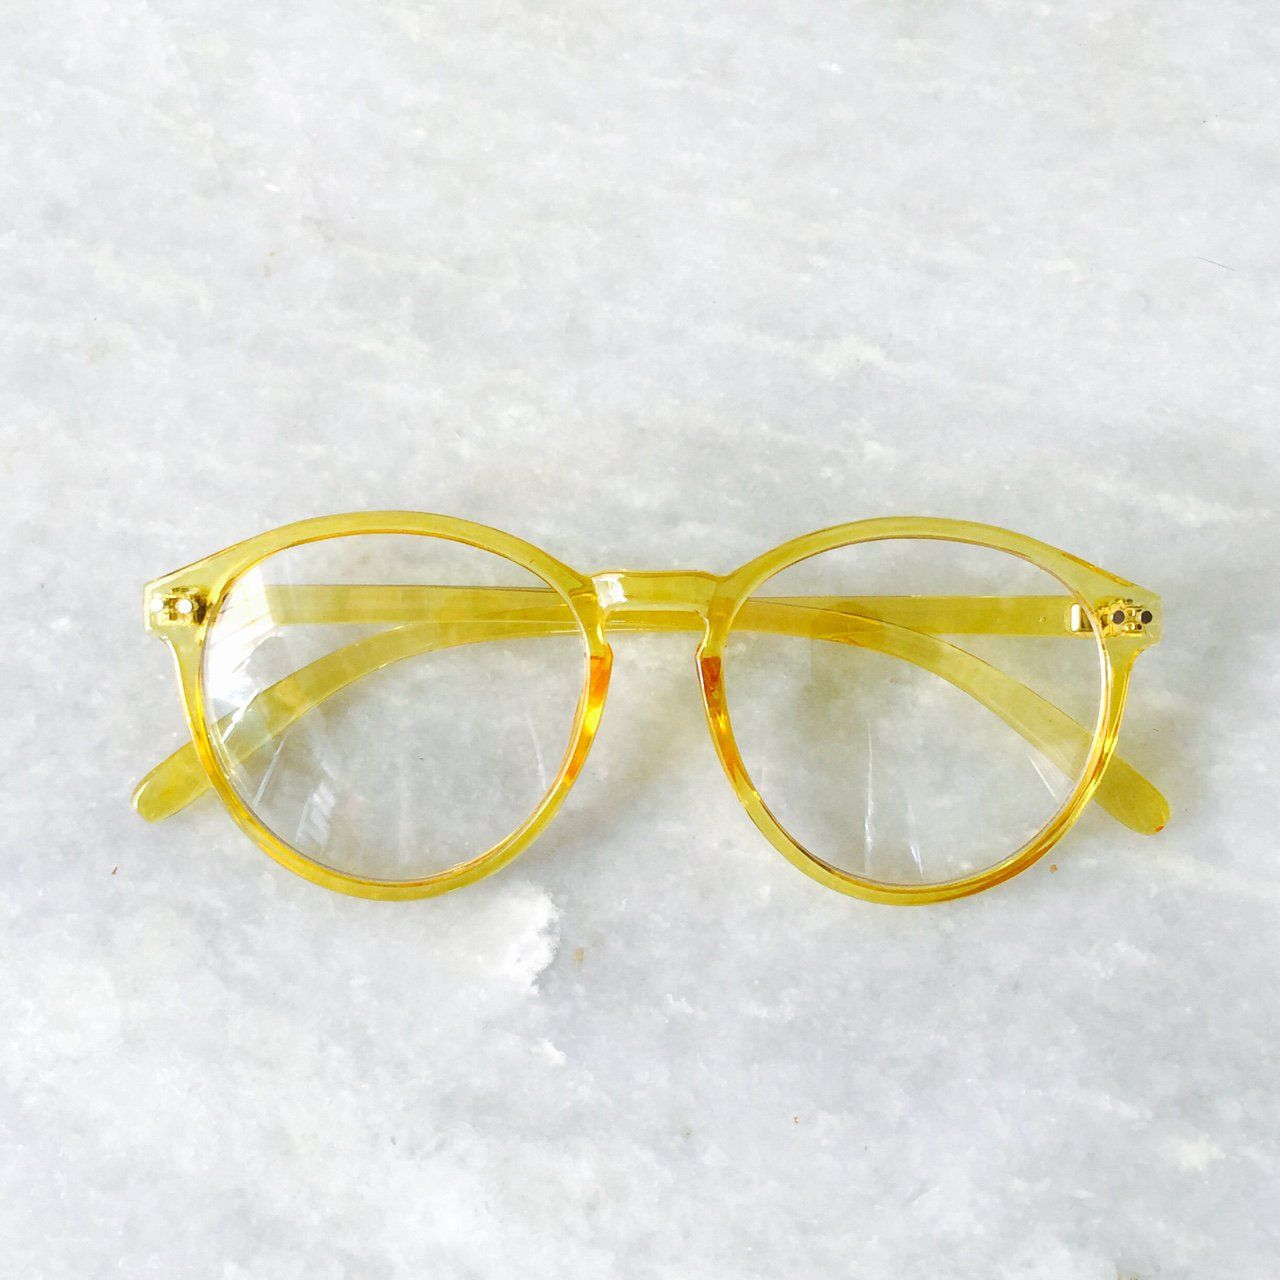 69c94032bd9 Retro Yellow Pantos Frame Clear Lens Glasses ⌛ Yellow Frame • Pantos Style  • Replaceable Lens • Retro Fit • Denim shorts • Basic Tee • Vans Shoes •  SENT ...